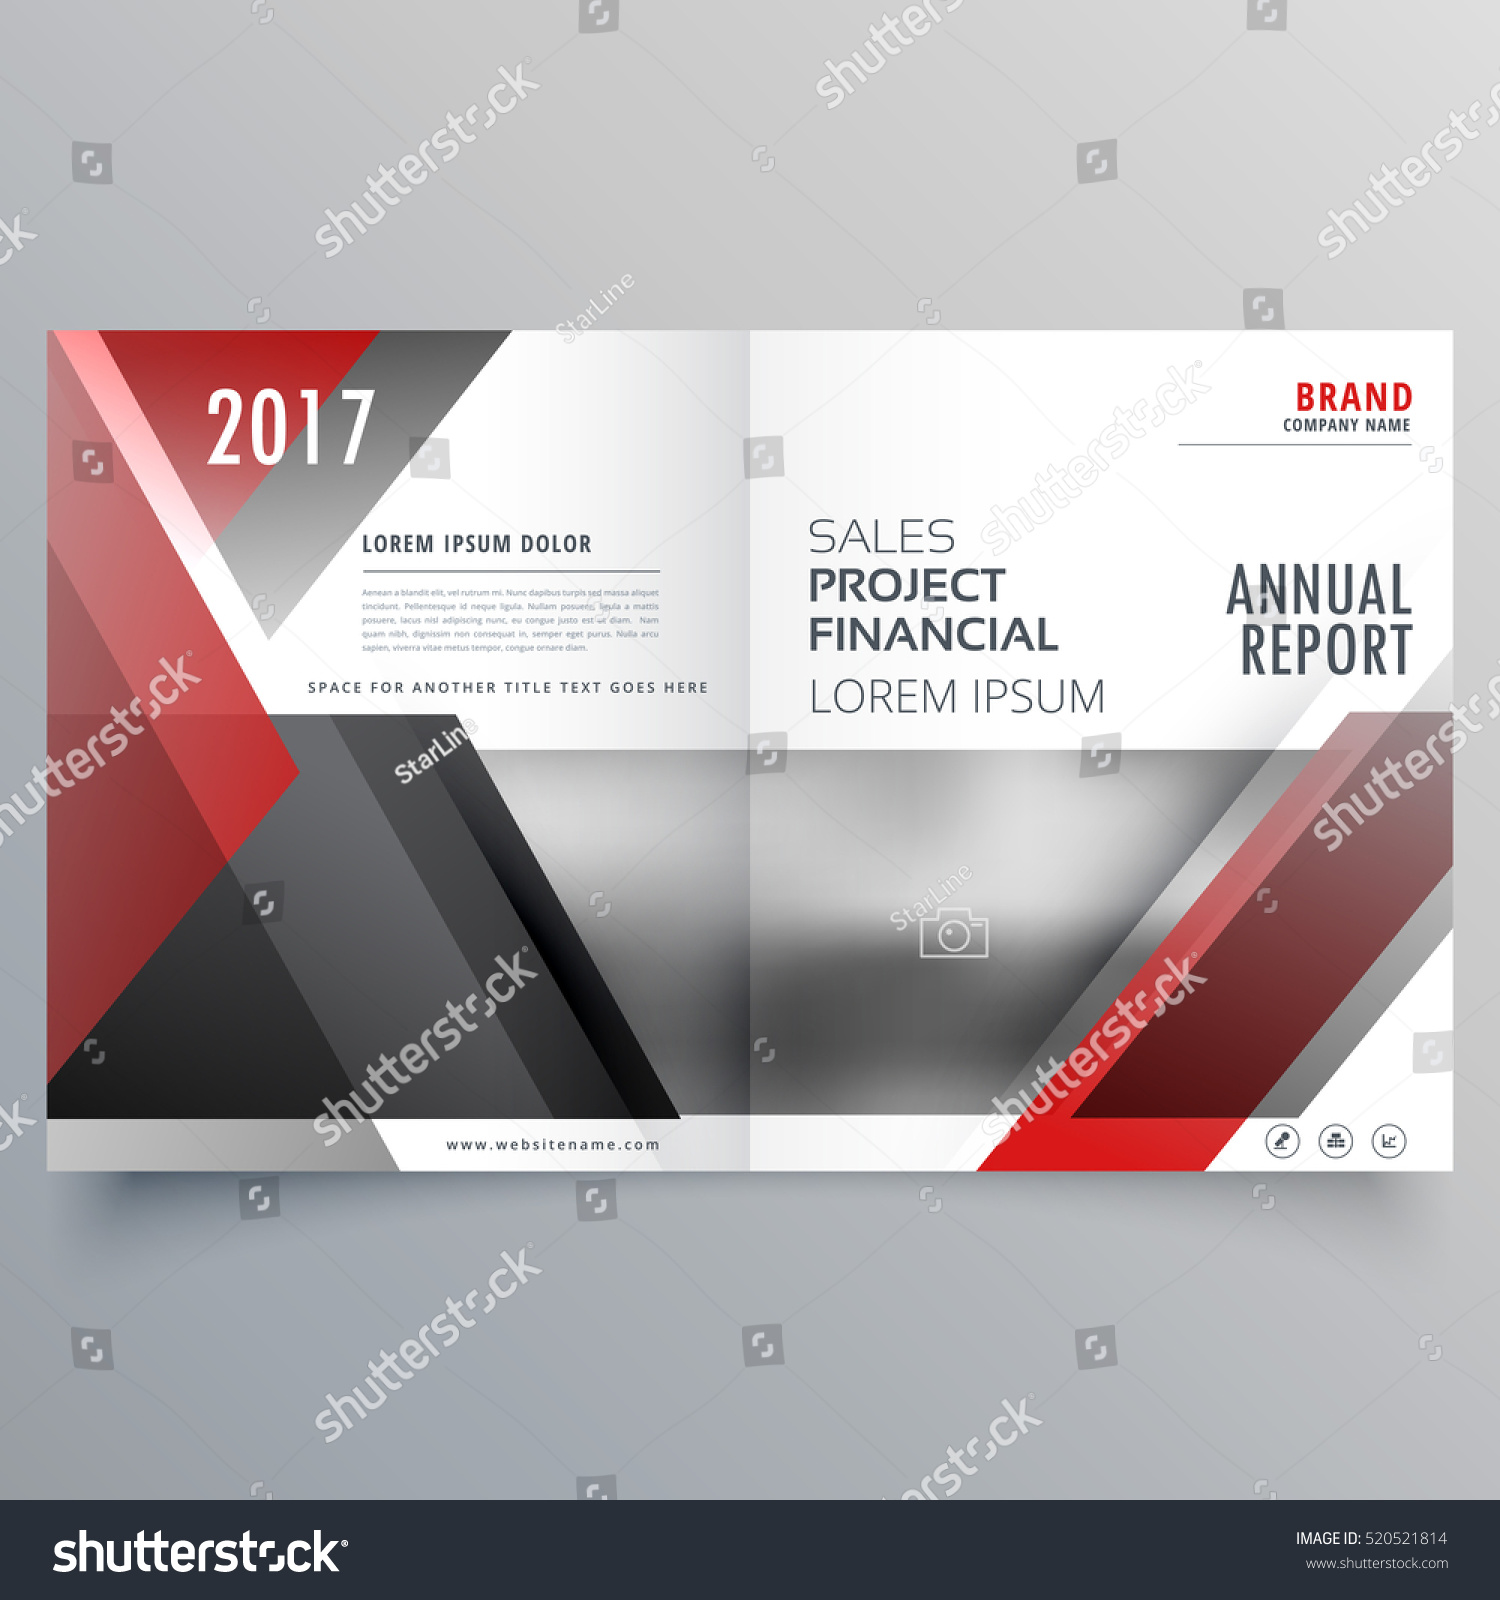 Coverpage Template Eliolera – Project Cover Page Template